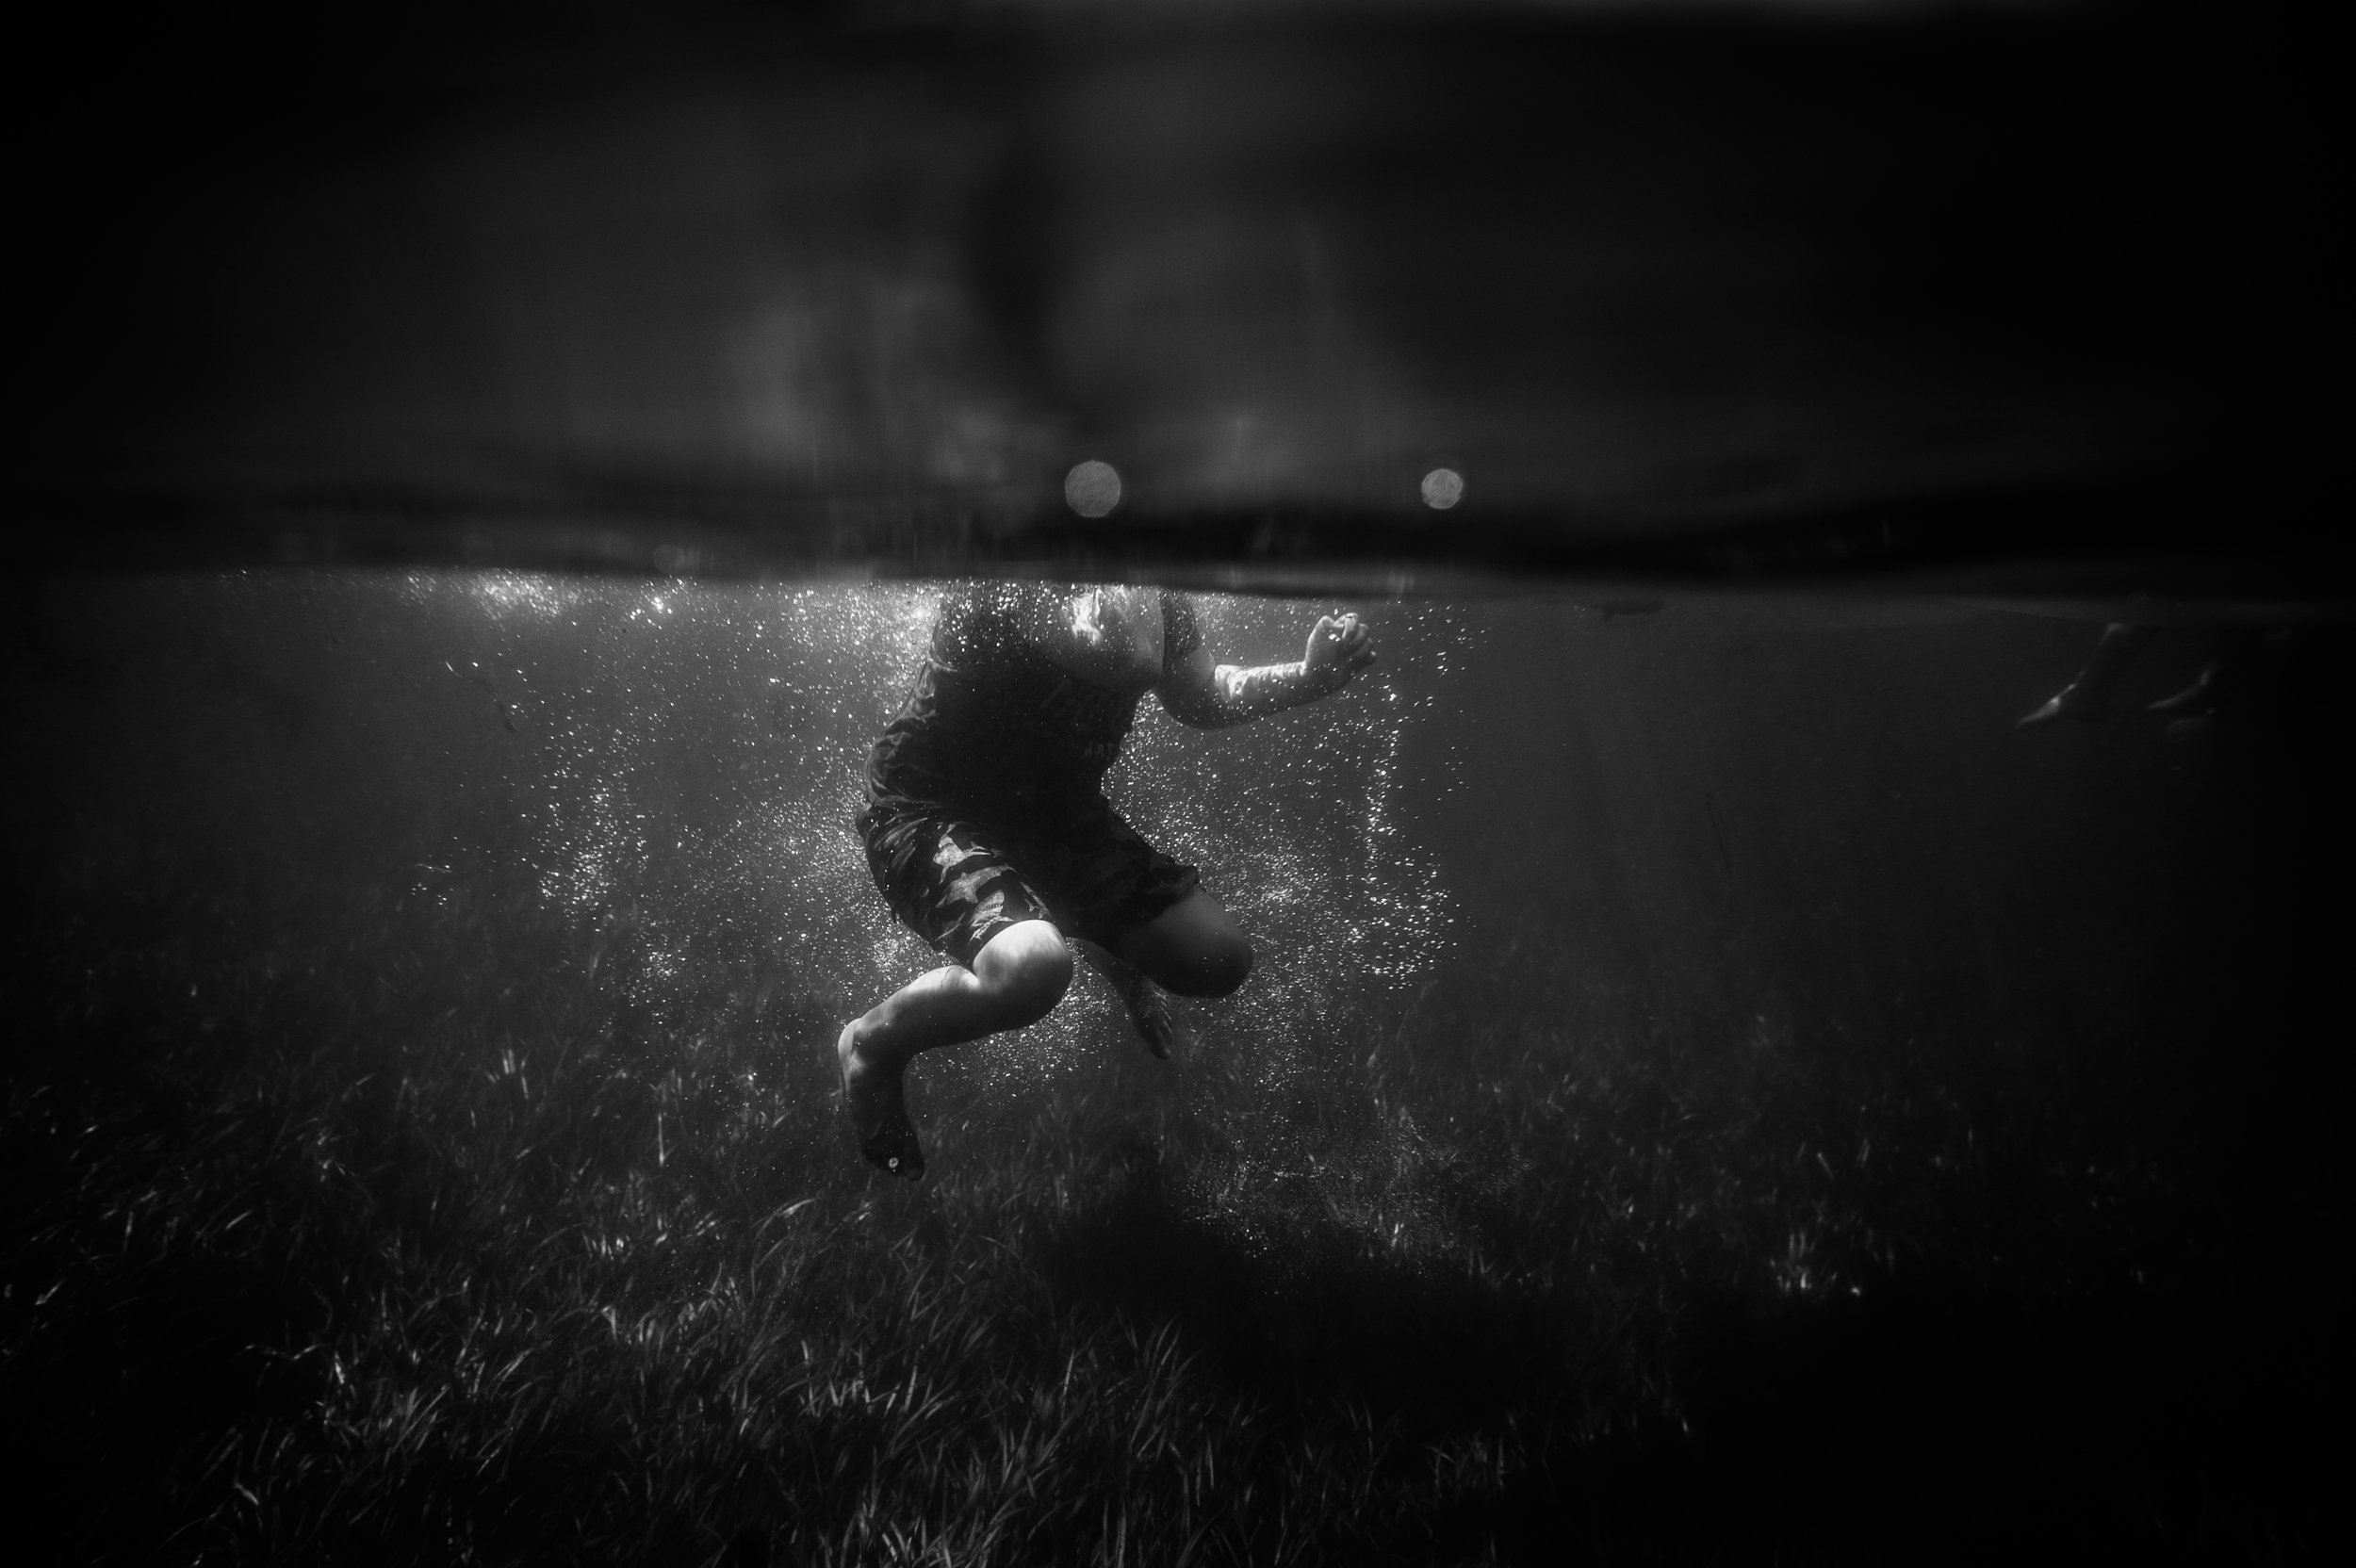 hamilton-creek-photography-underwater-photography-4.jpg